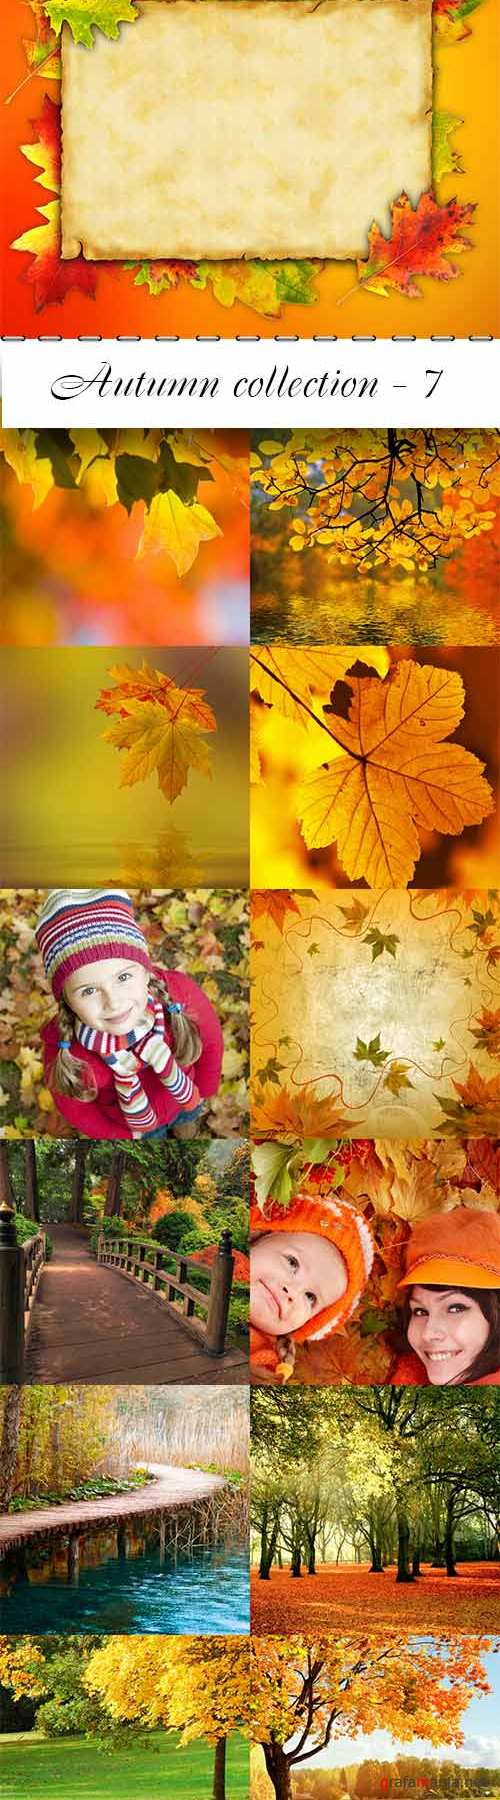 Autumn collection raster graphics - 7